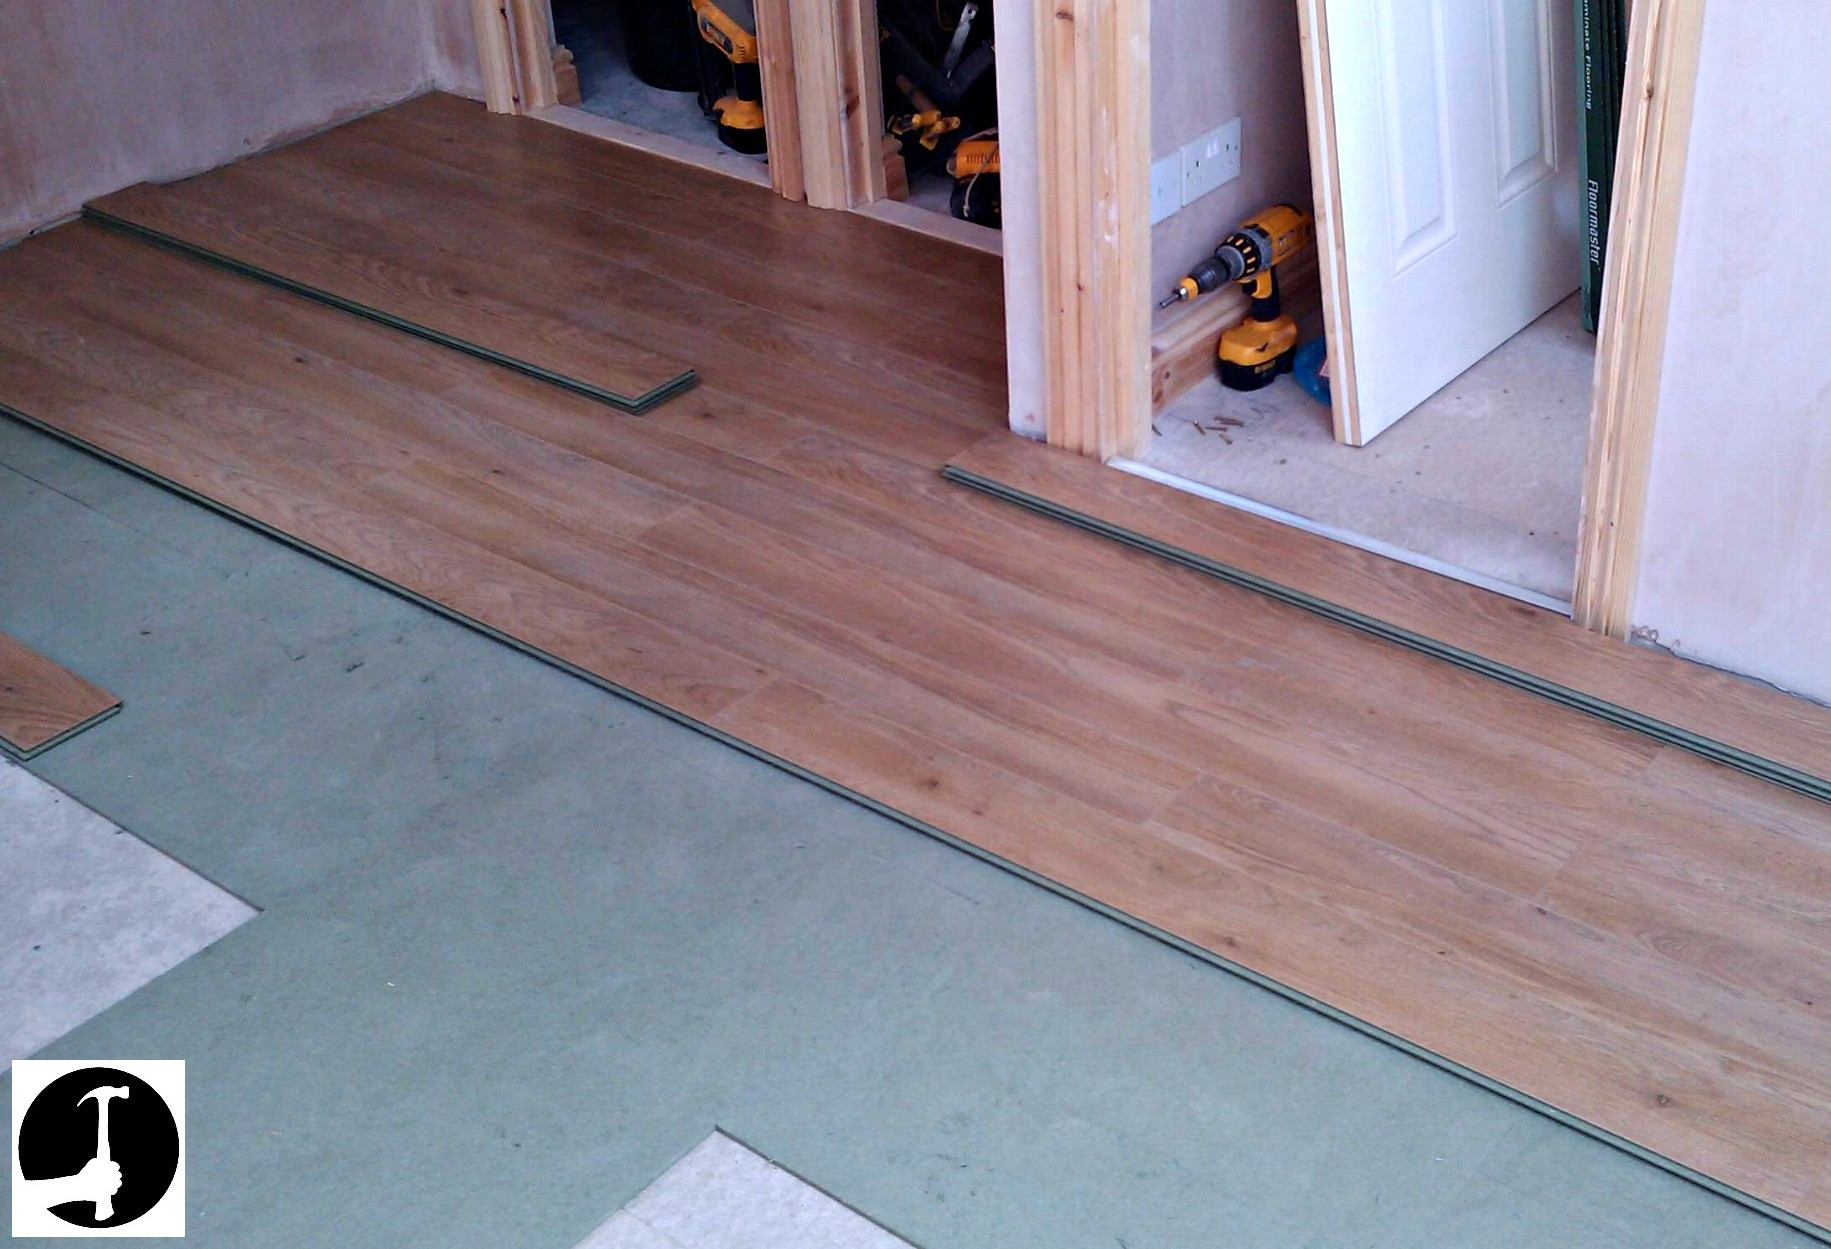 19 Elegant Hardwood Flooring Installation issues 2021 free download hardwood flooring installation issues of how to install laminate flooring with ease glued glue less systems within laminate started